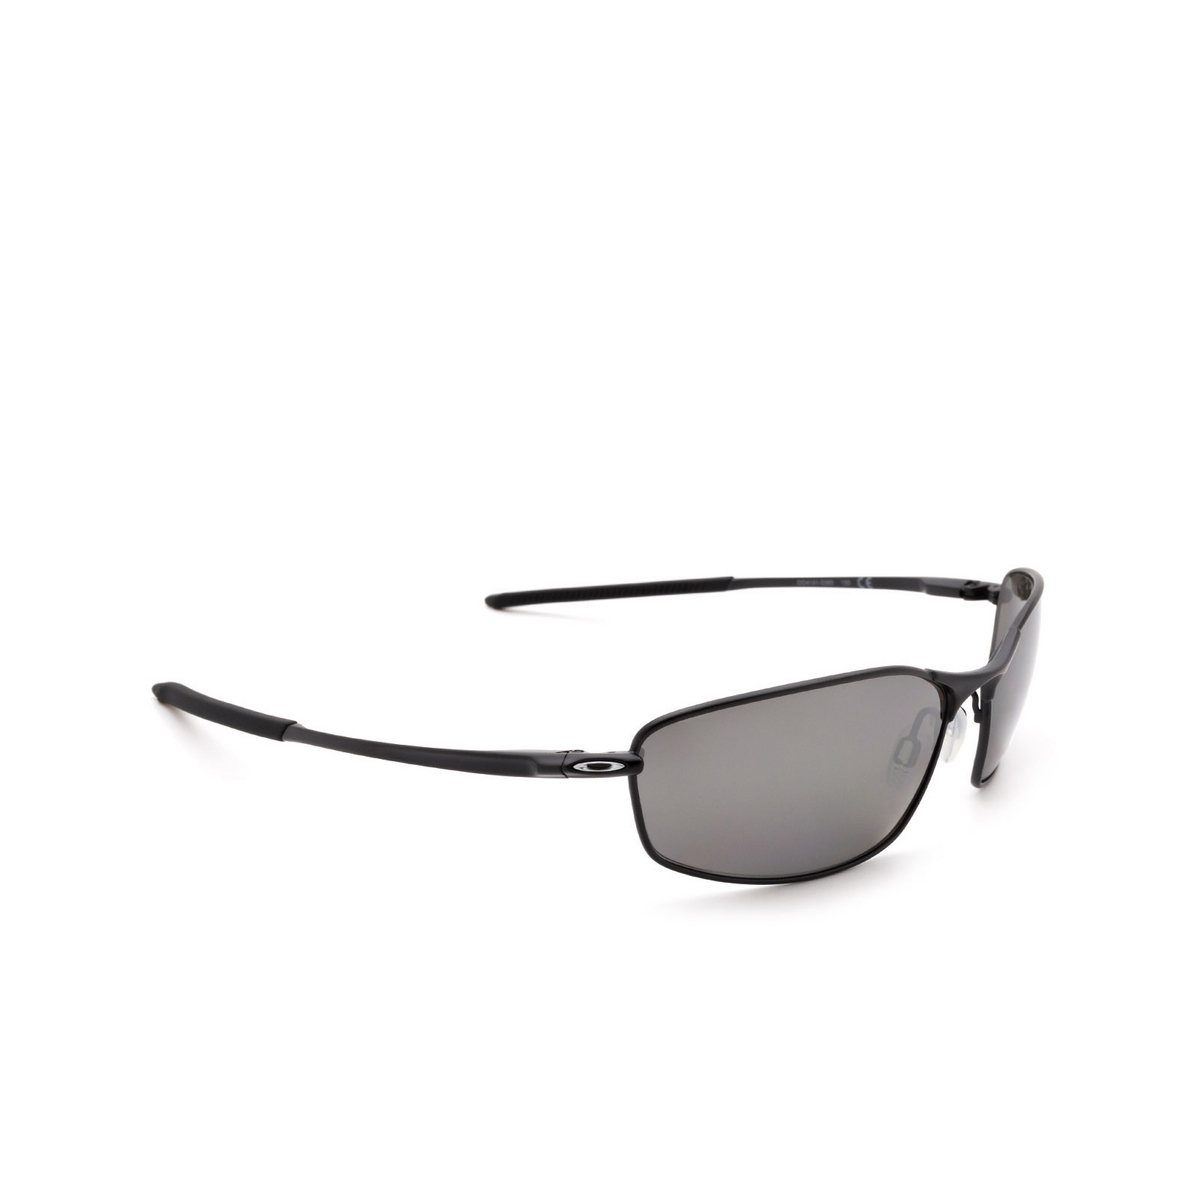 Oakley® Oval Sunglasses: Whisker OO4141 color Carbon 414101 - three-quarters view.